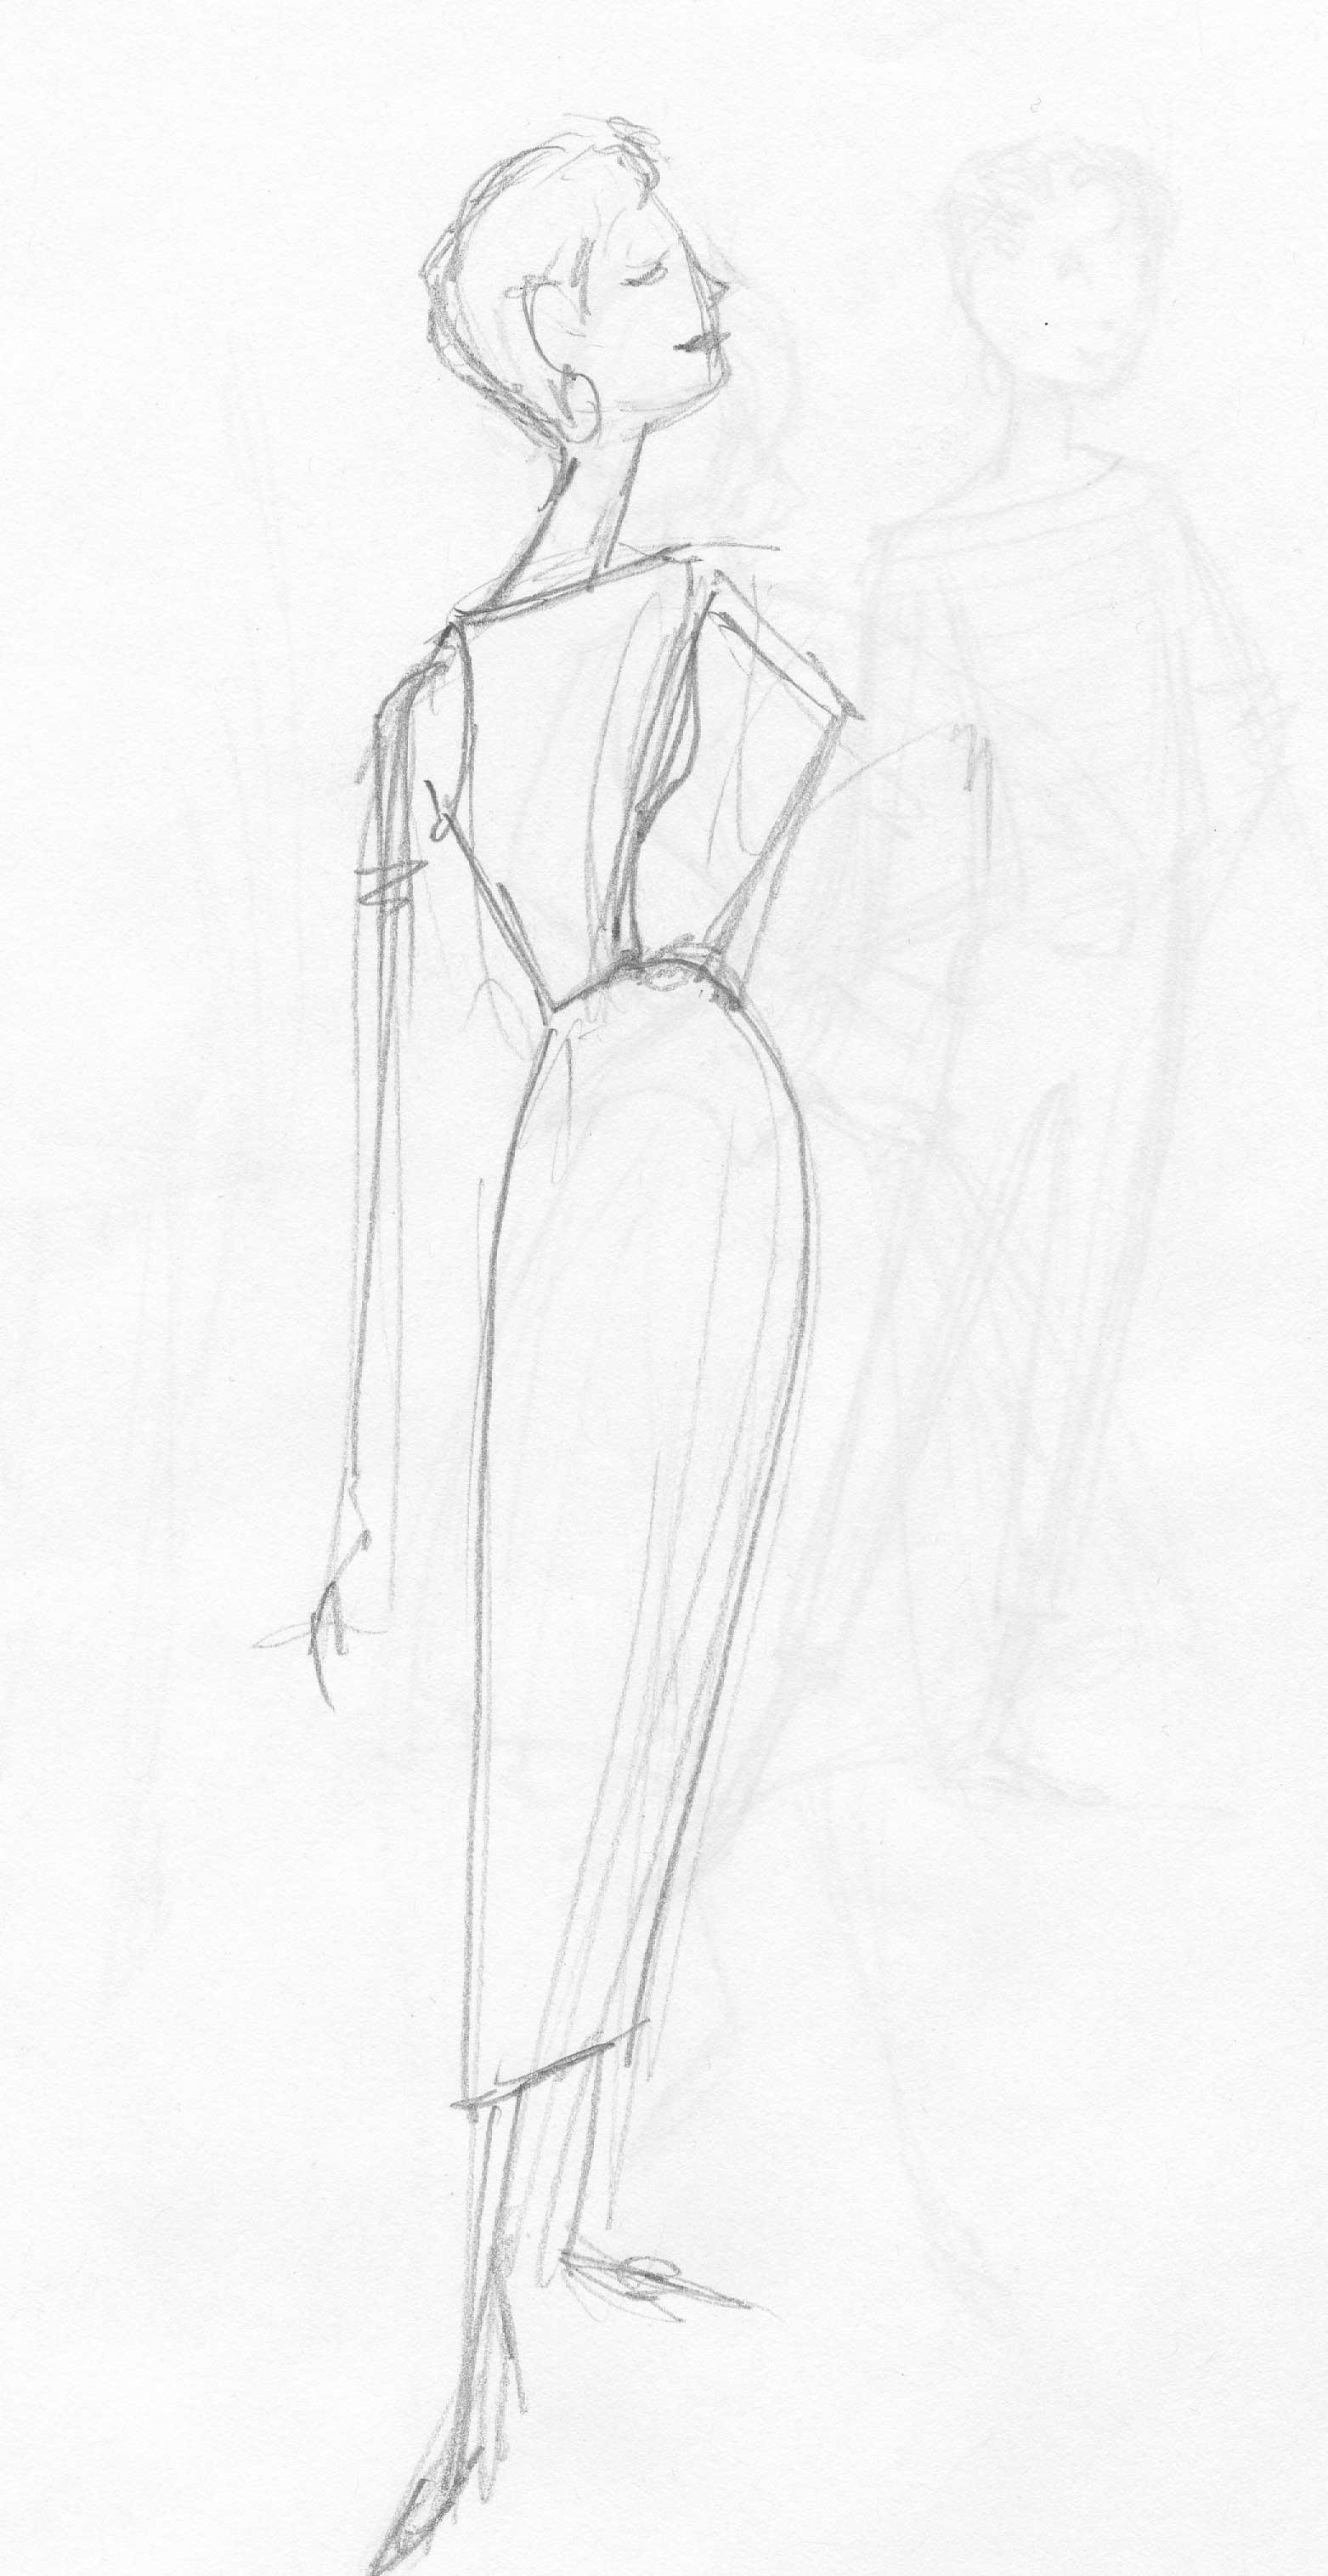 *(SKETCHES)* a walk down memory lane - image 12 - student project